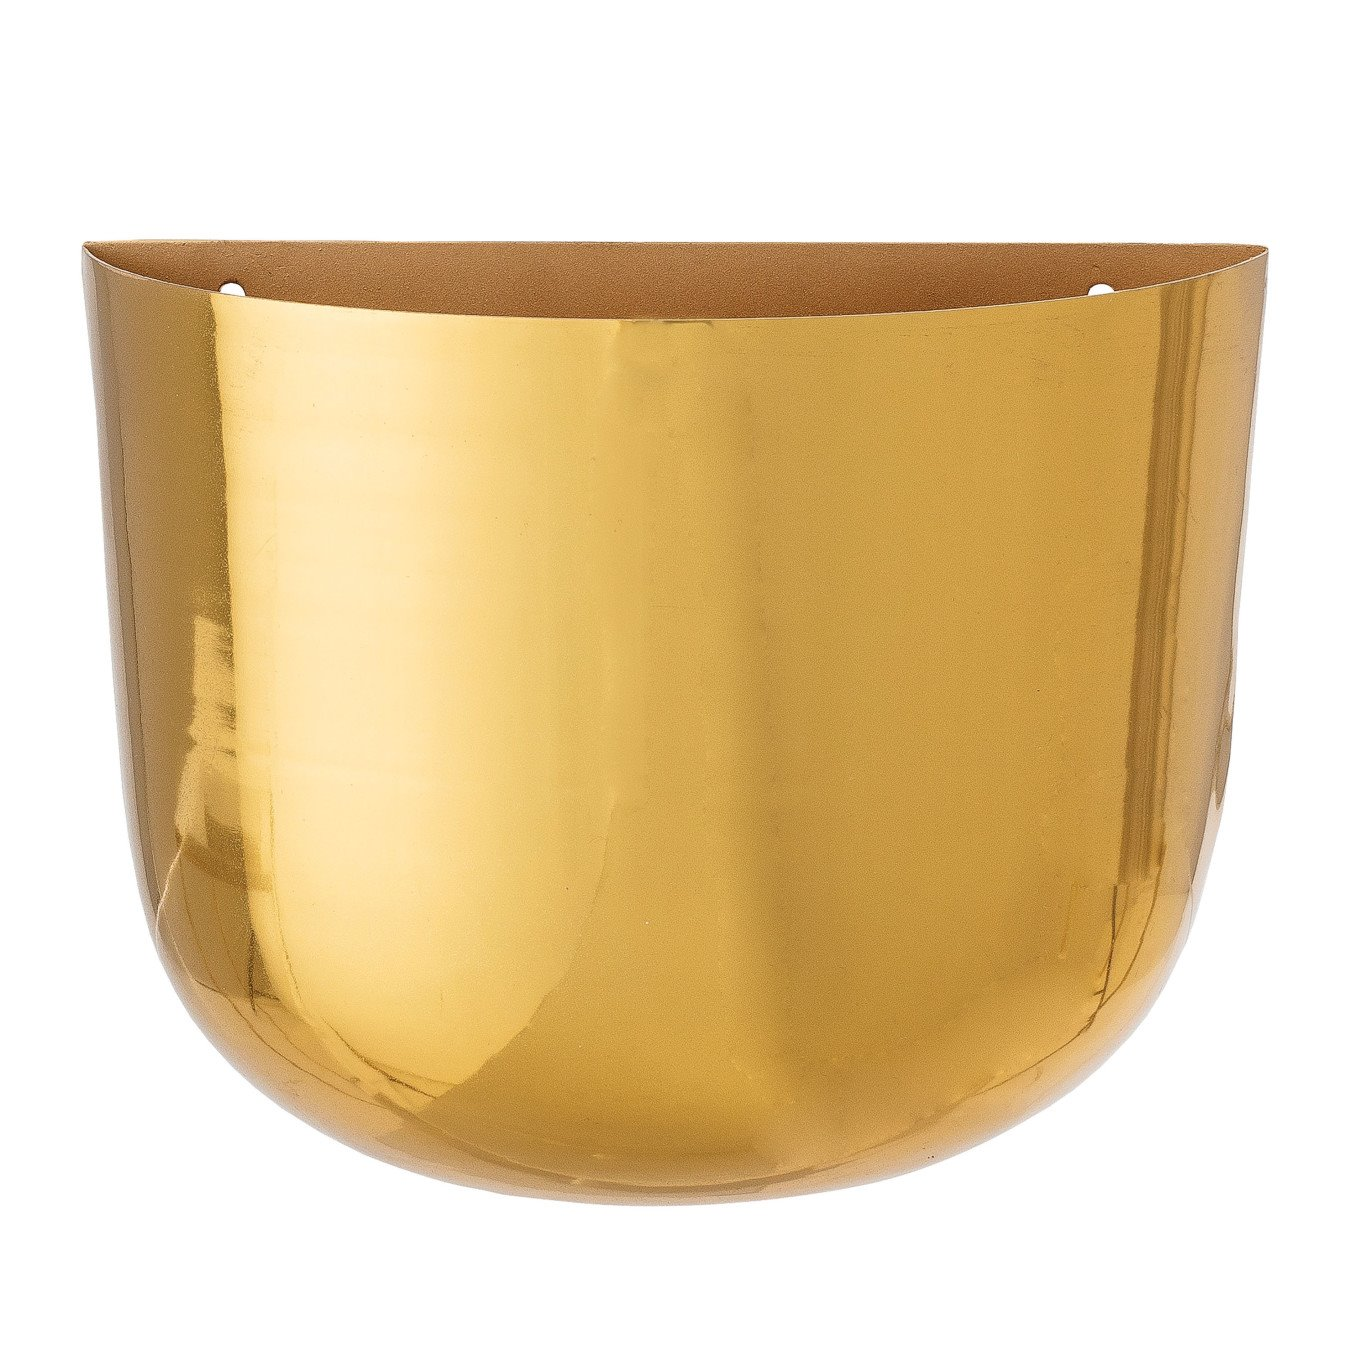 Metal Wall Planter with Brass Finish